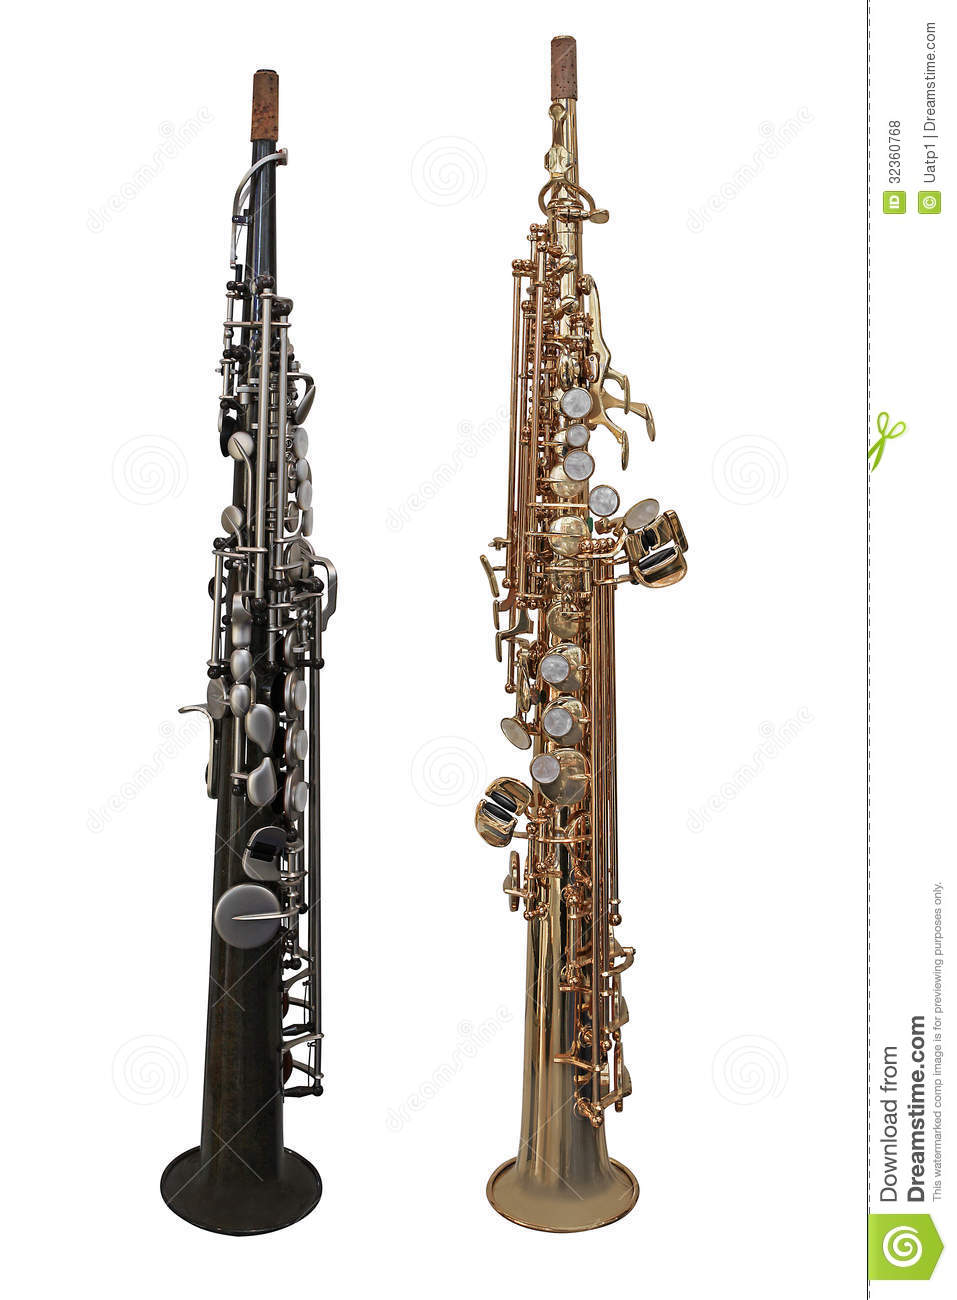 how to play all the notes on the clarinet